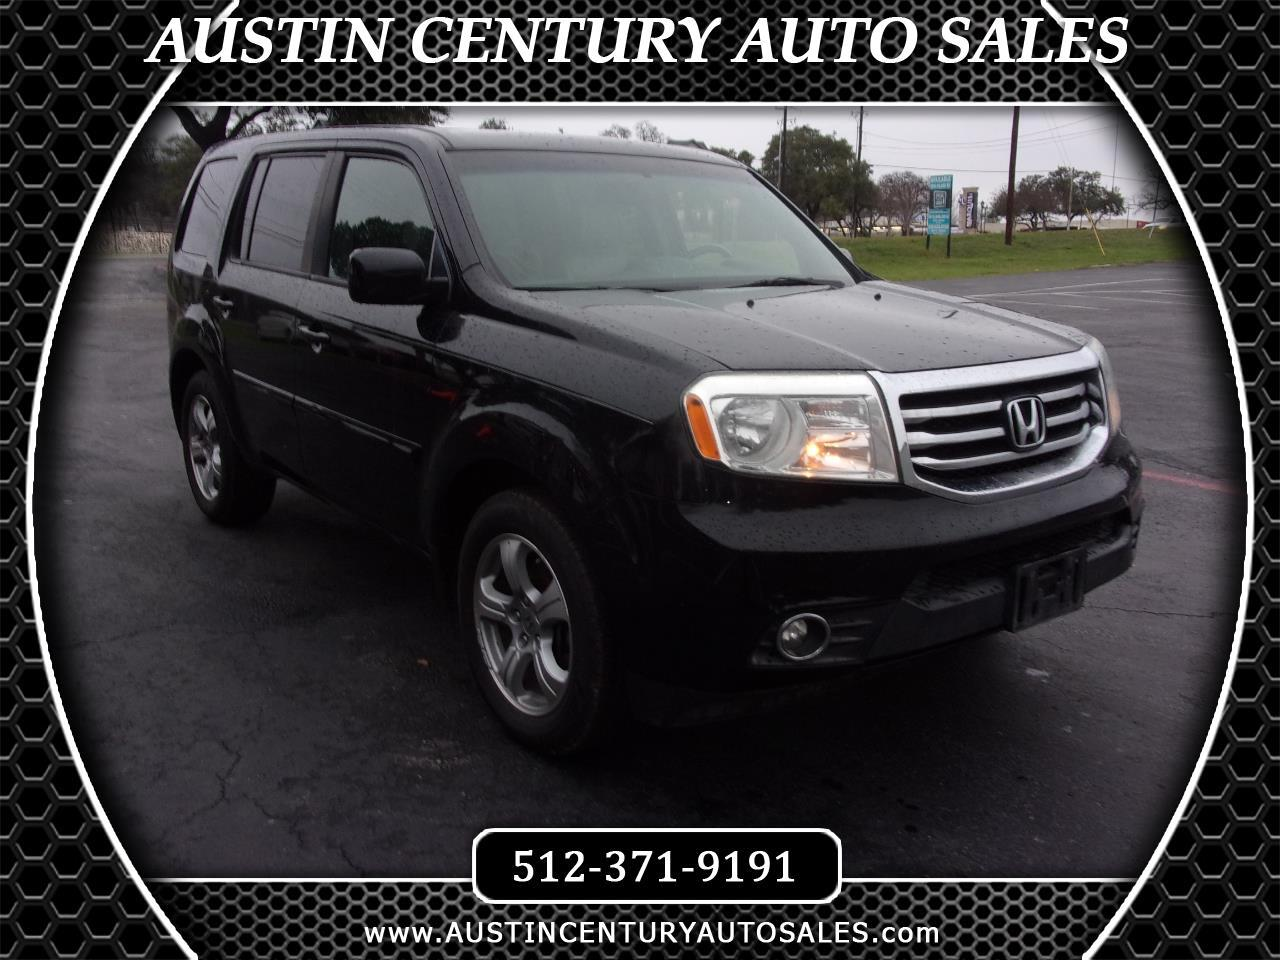 Honda Pilot EX-L 2WD 5-Spd AT with Navigation 2012